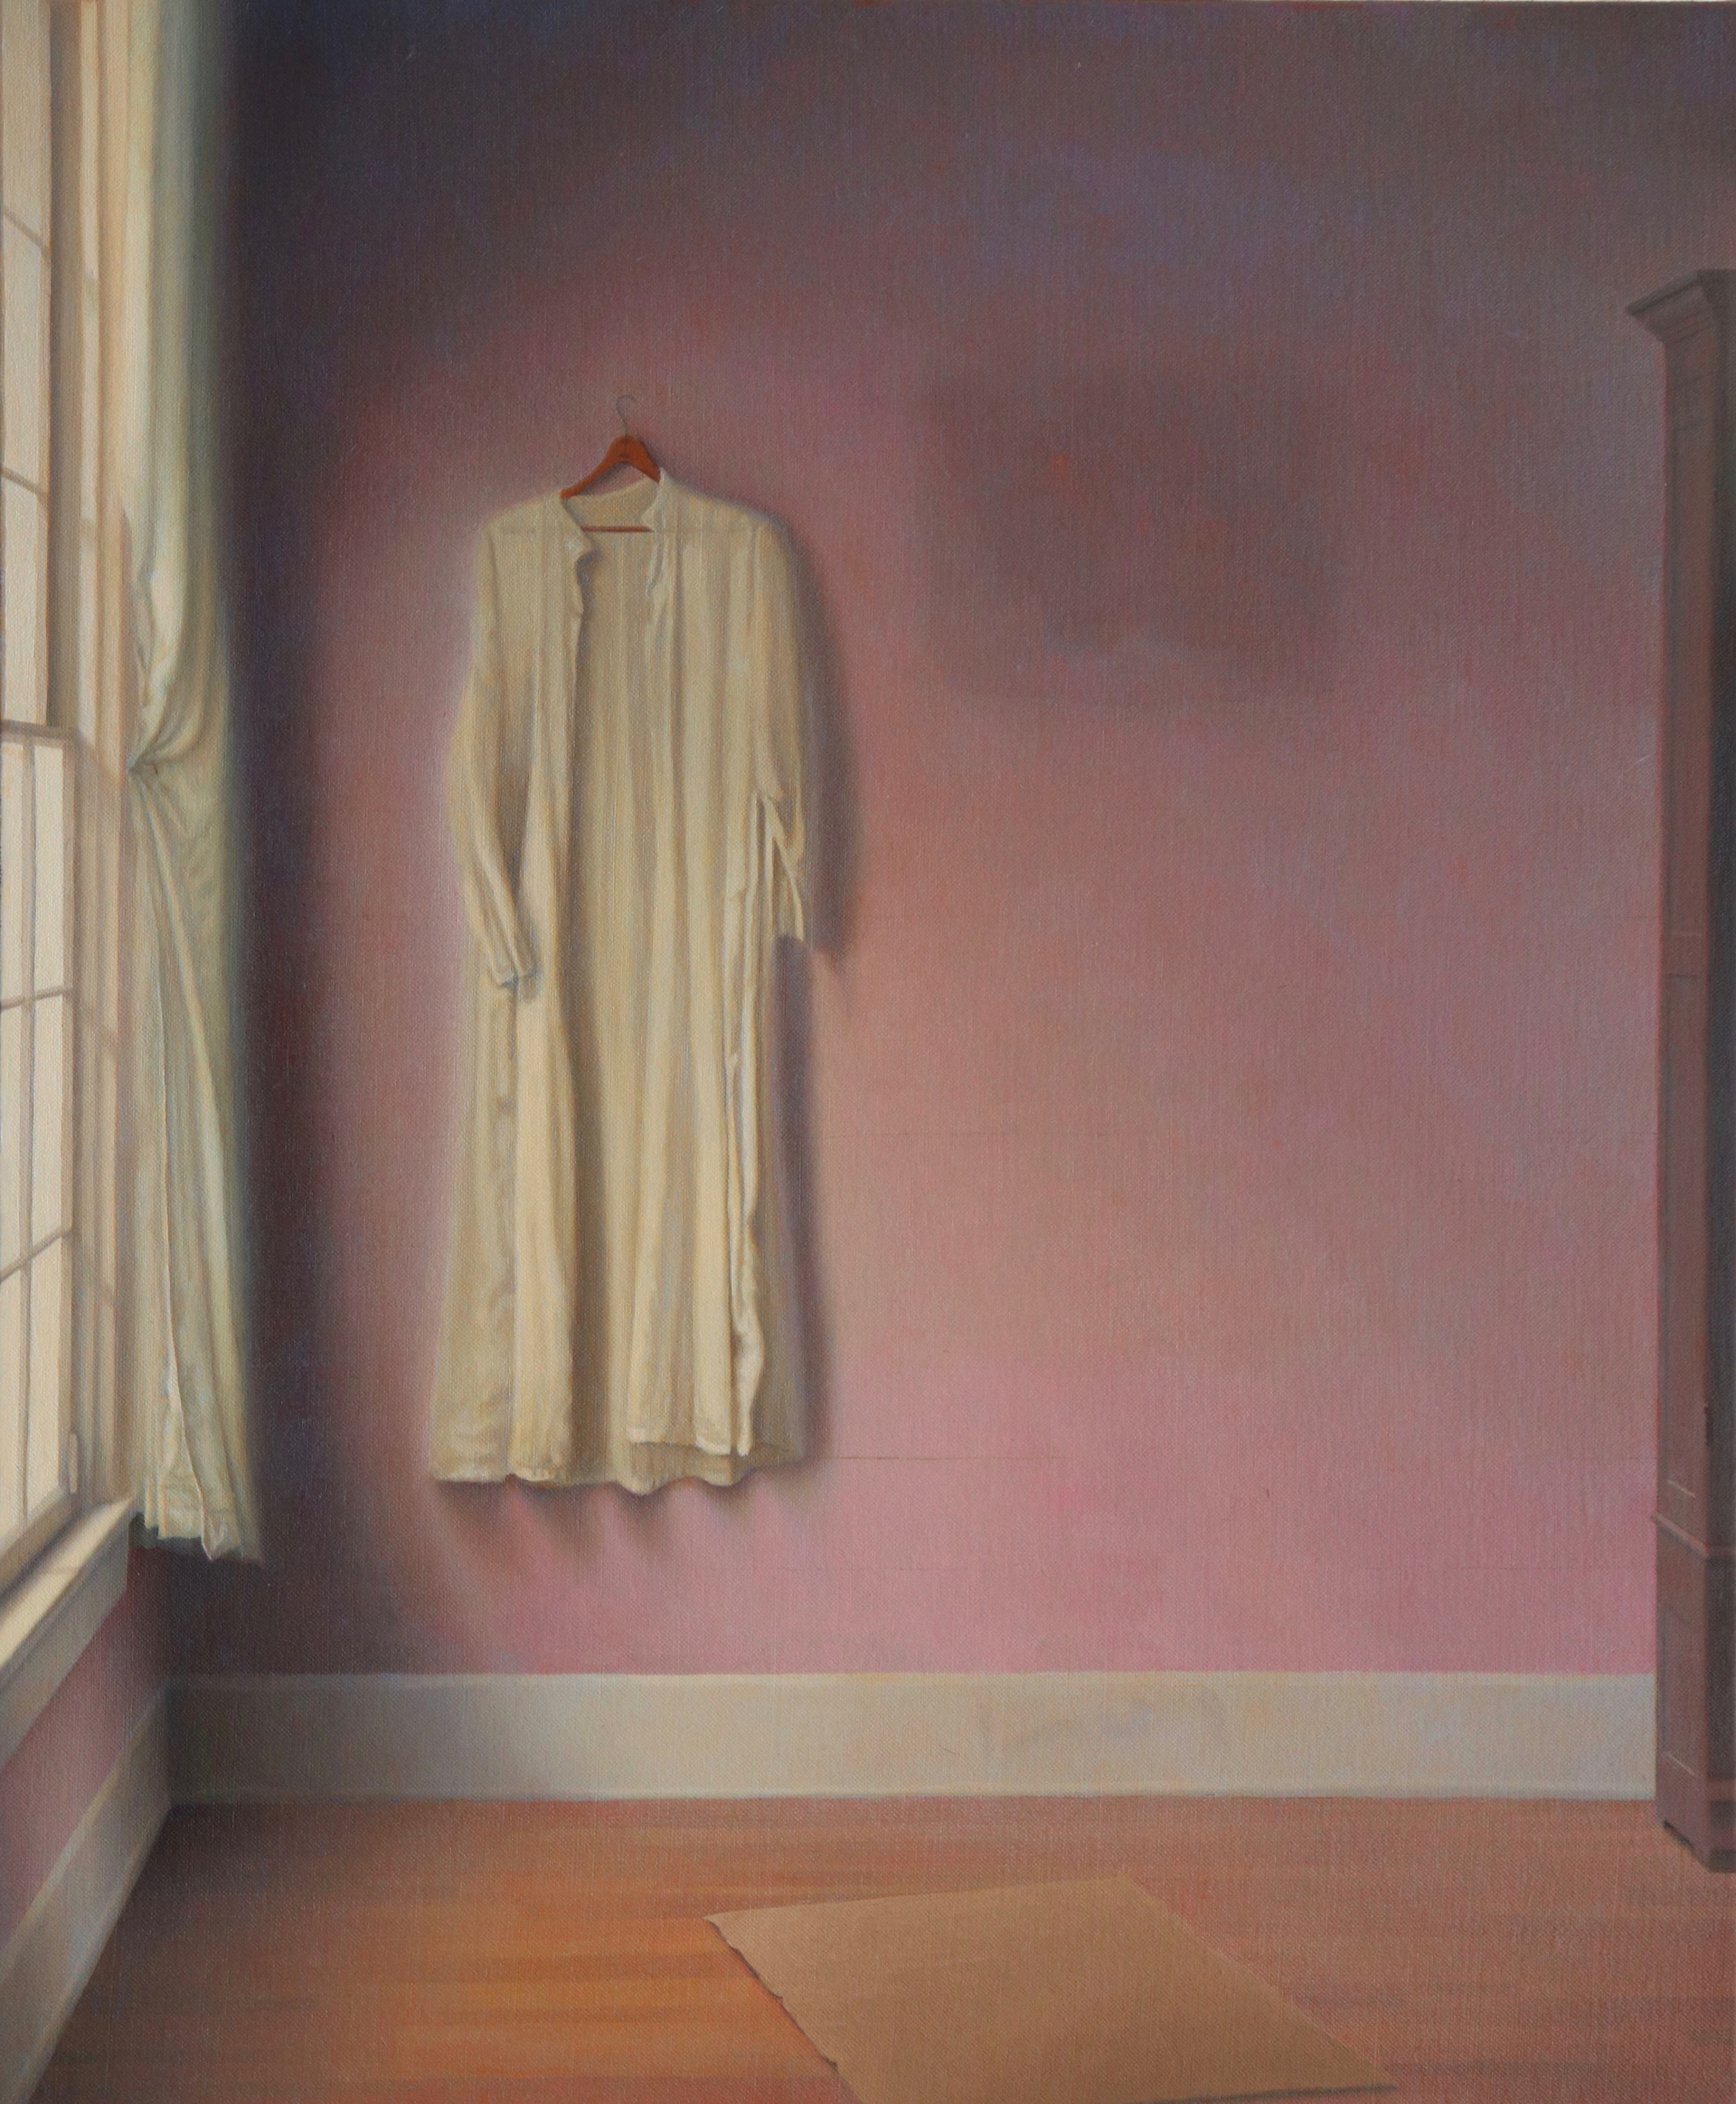 Interior with White Gown by Charles Carraway